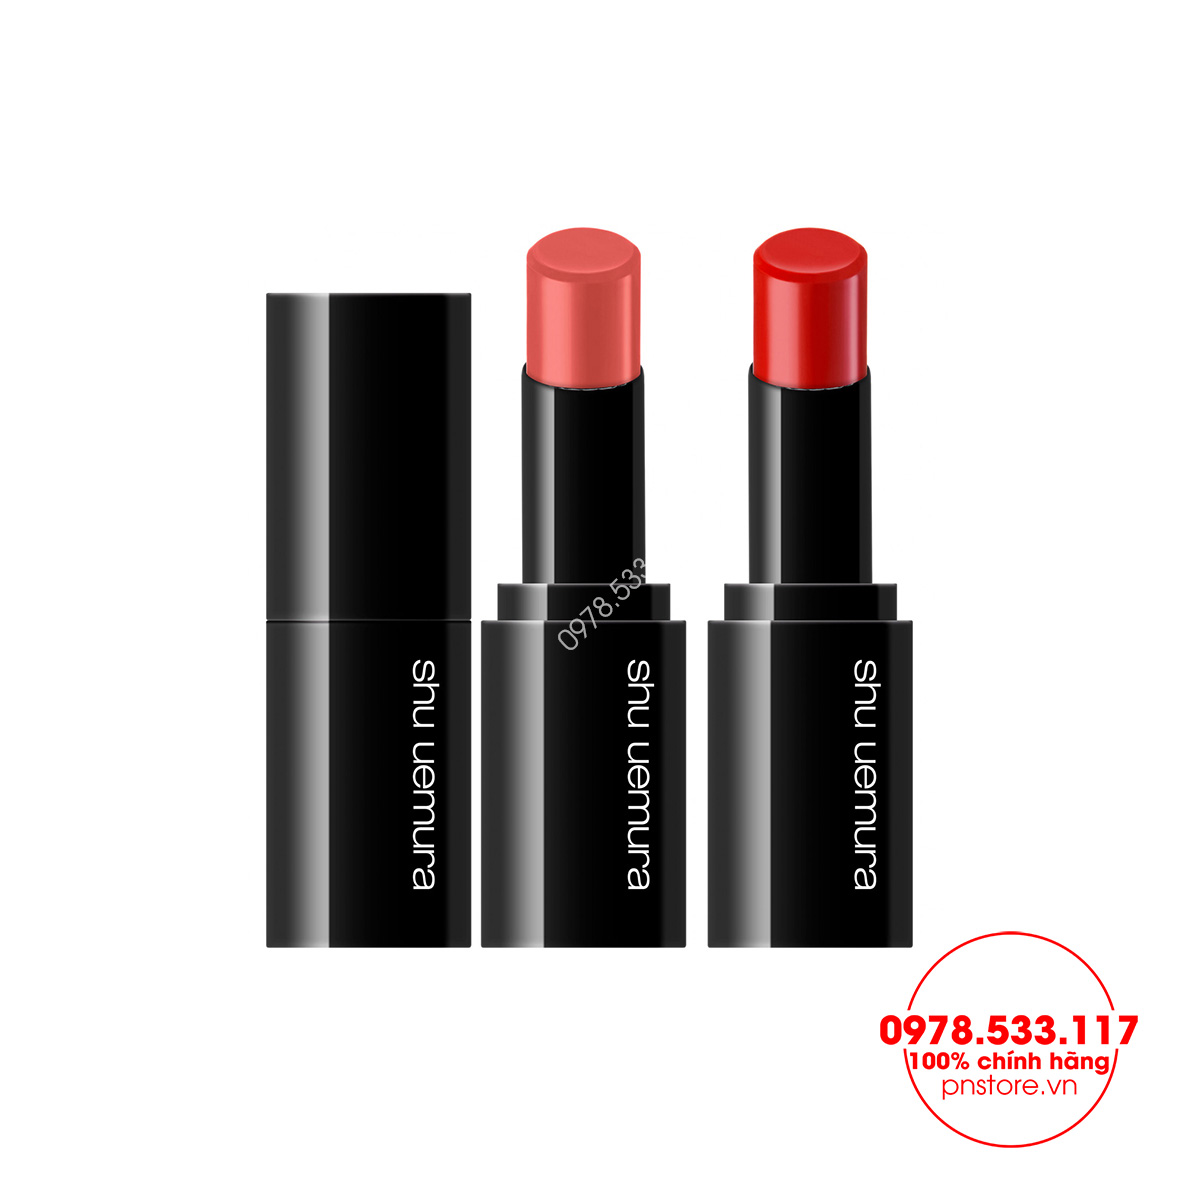 bang-mau-son-shu-uemura-rouge-unlimited-amplified-chinh-hang-nhat-ban-vo-den-2019